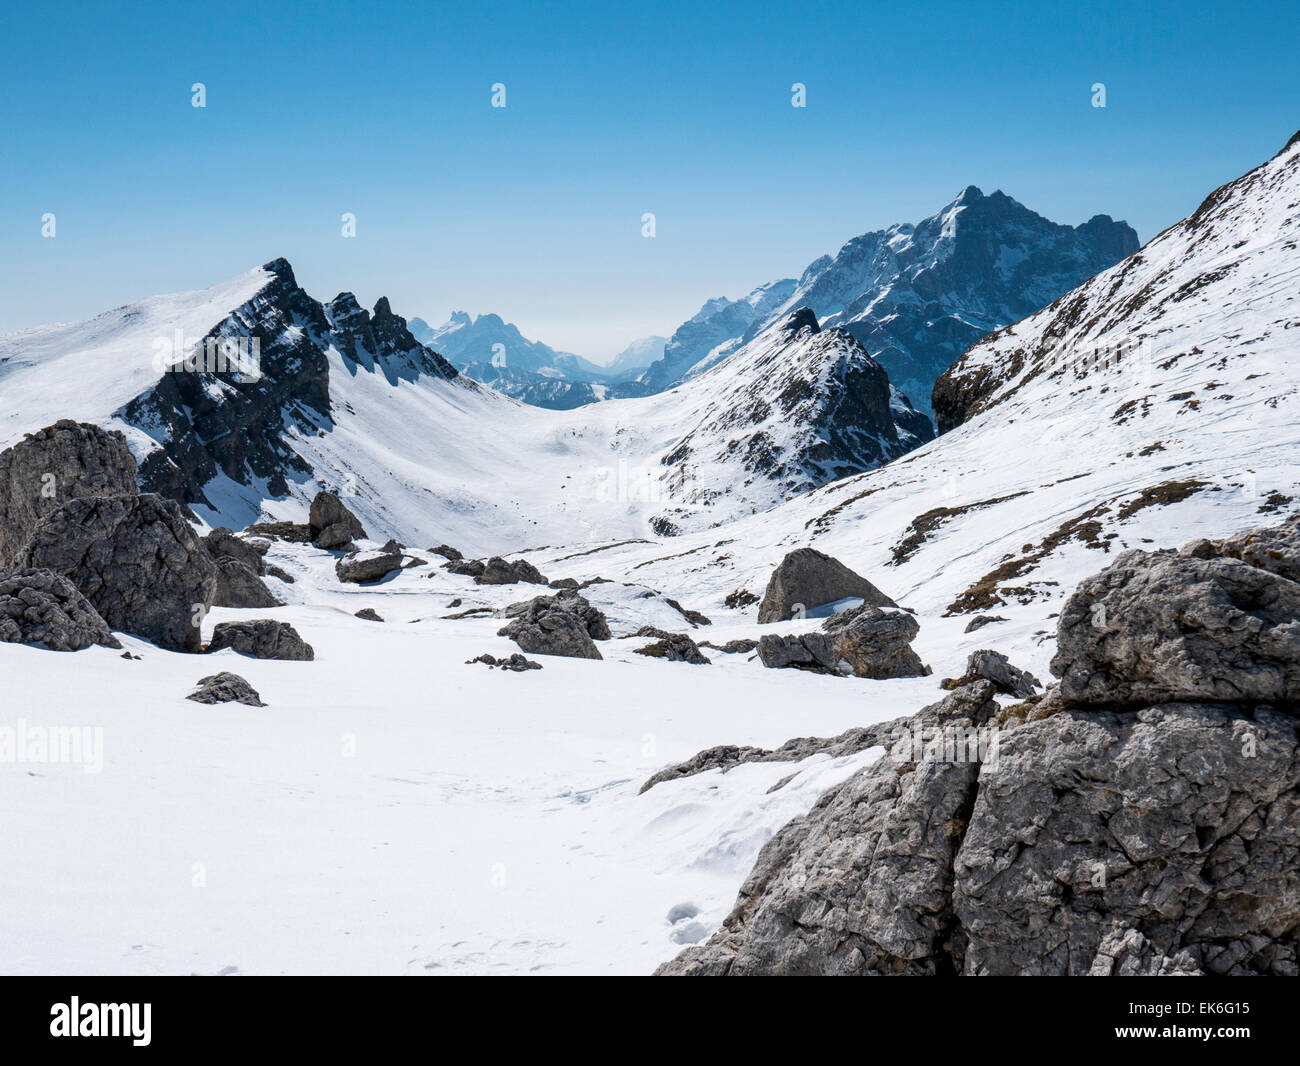 Clear winter day, Mondeval, Dolomite Mountains, Alps, Italy - Stock Image